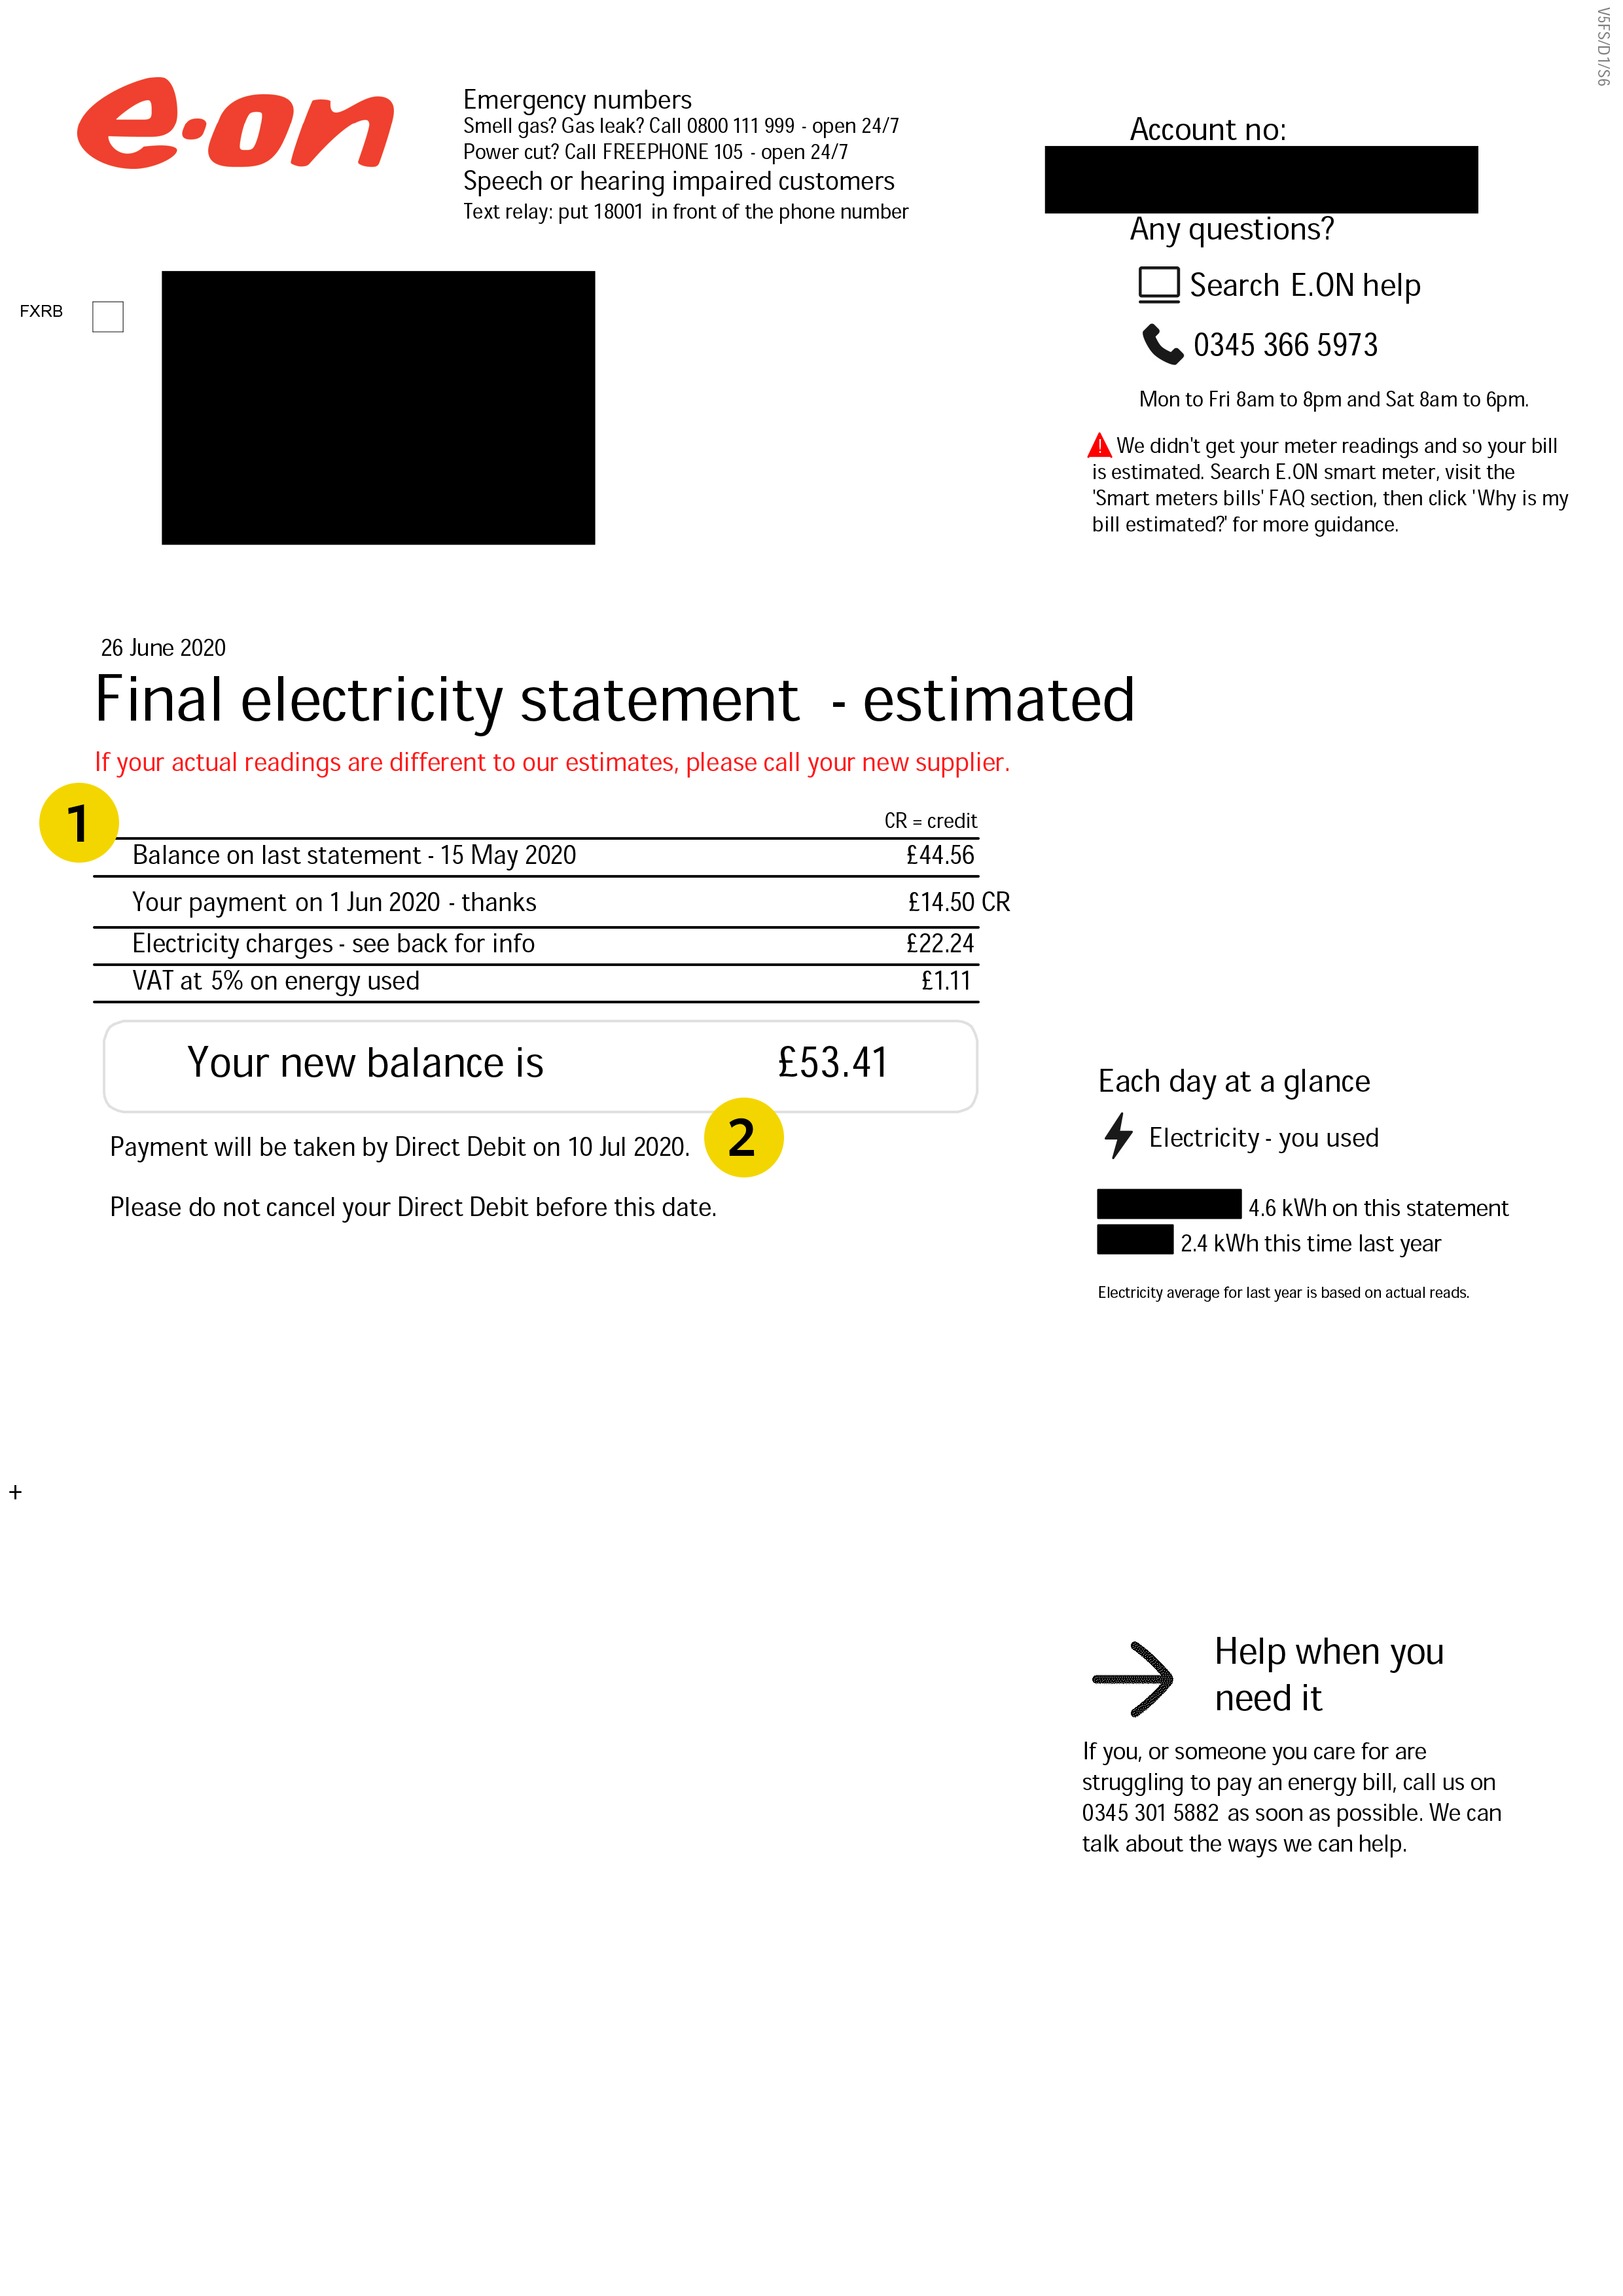 E.ON energy bill page 1